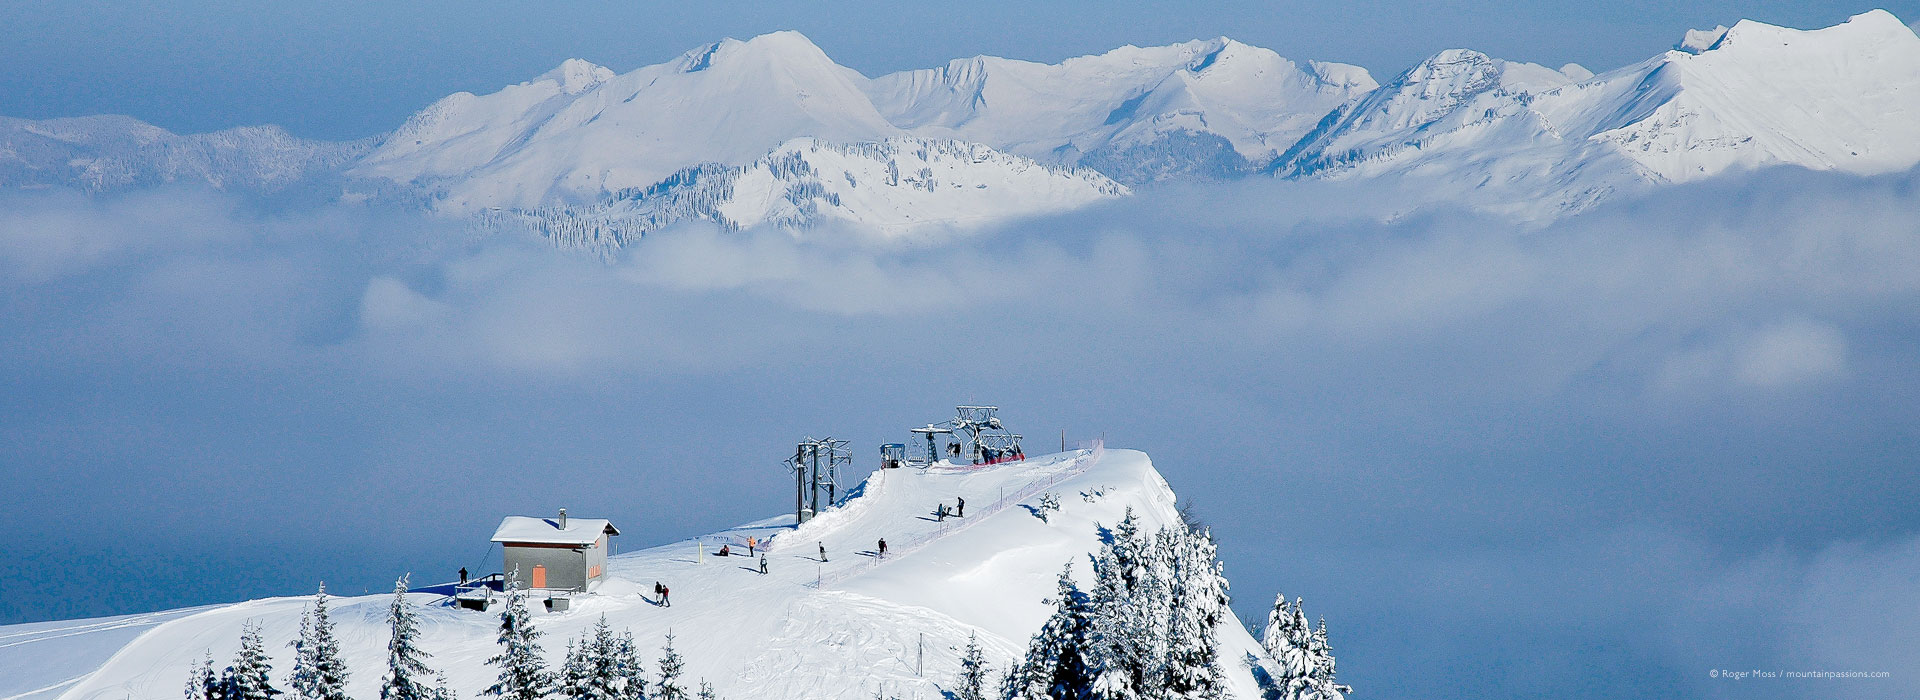 High view of chairlift with skiers, with mountains above clouds at Samoens